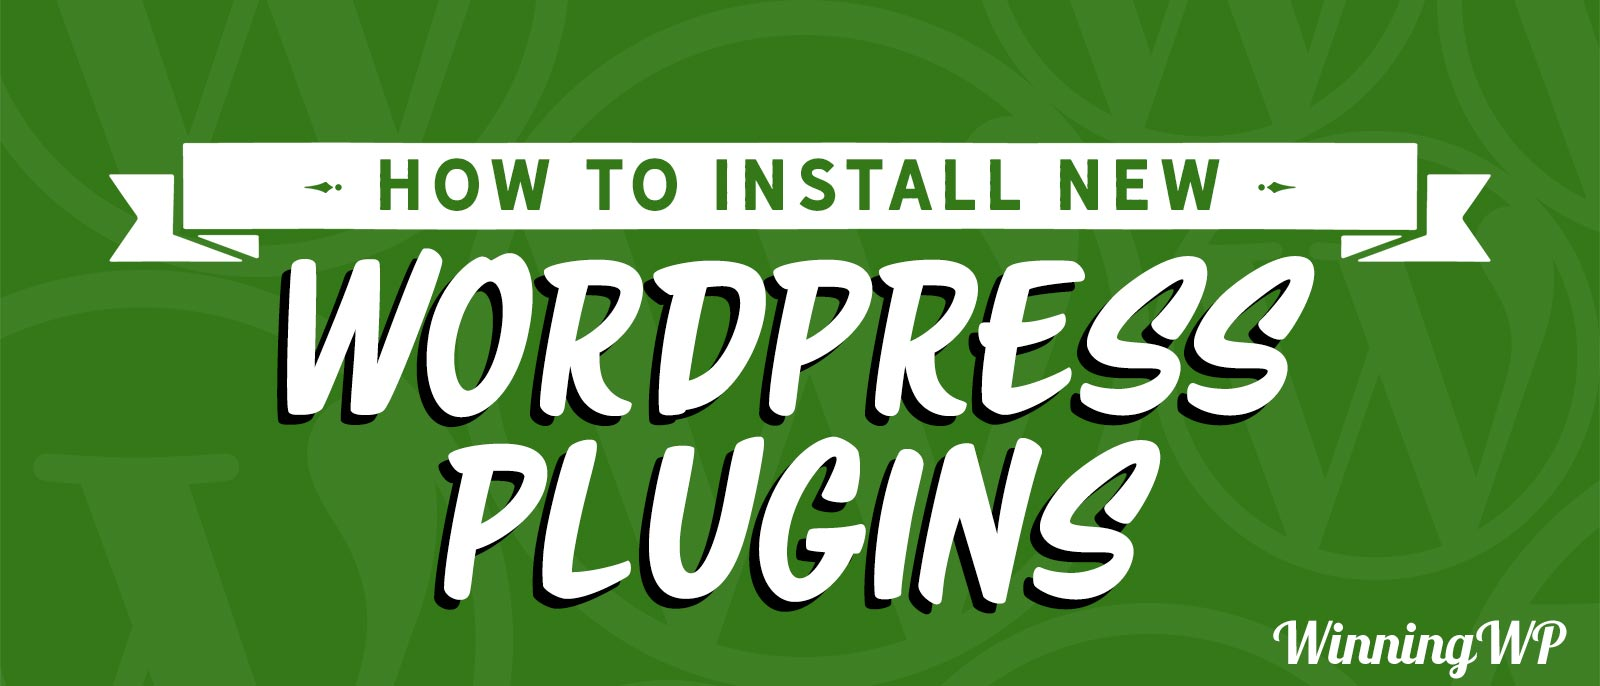 How to Install WordPress plugins (YouTube Video)